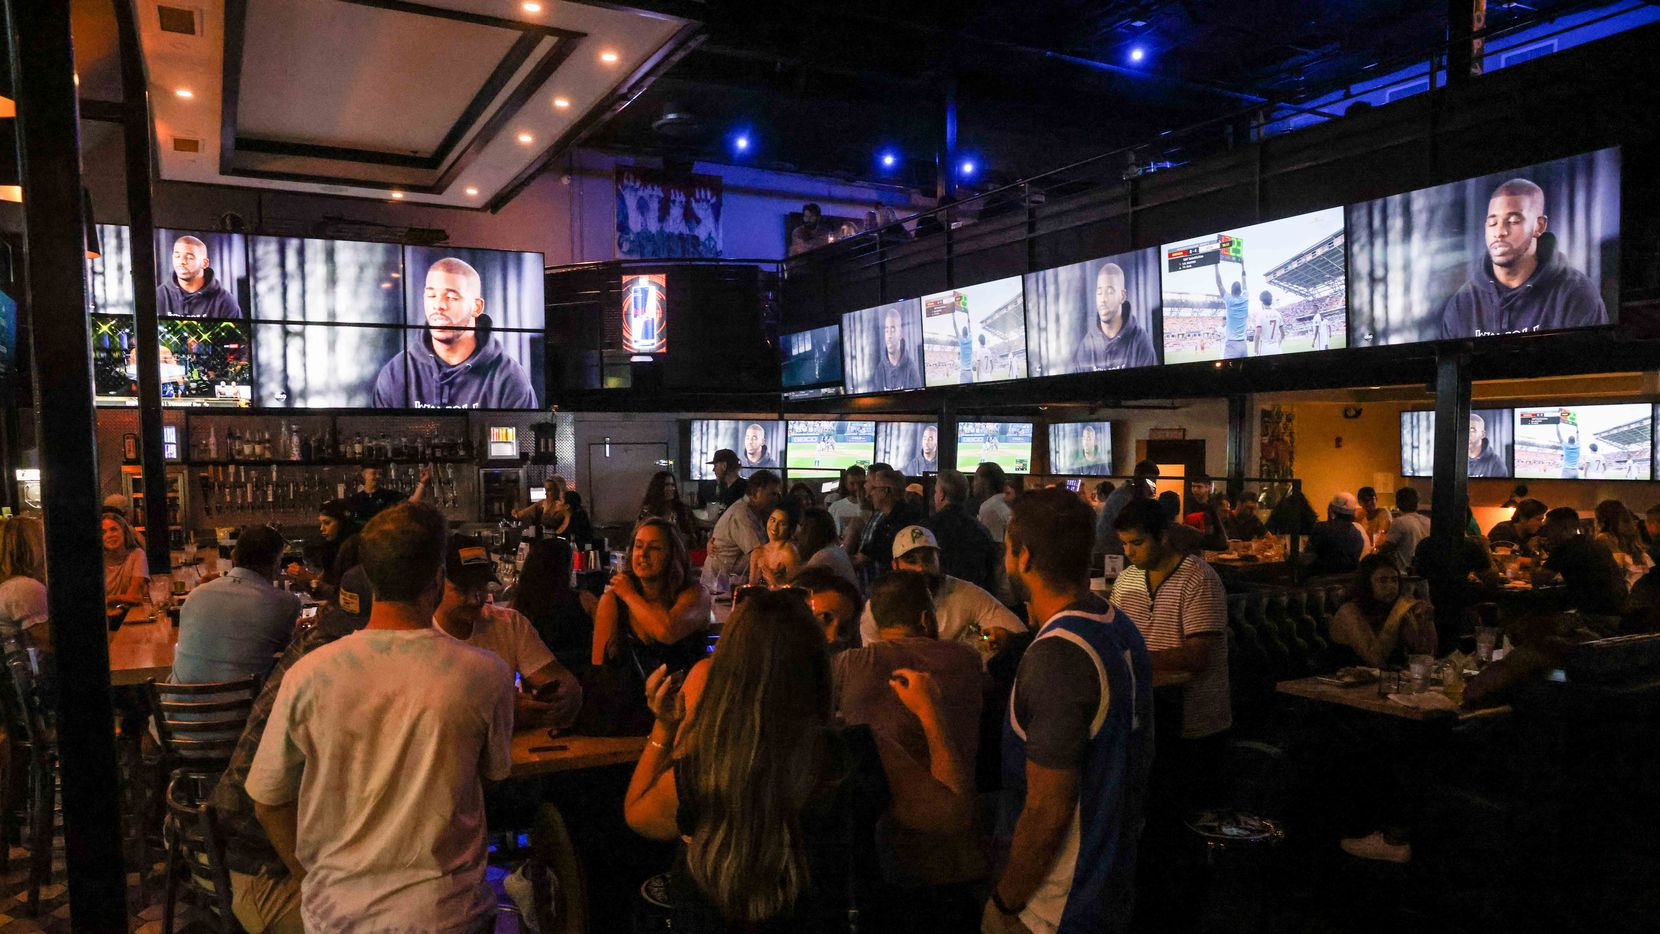 At Christies, a sports bar on Greenville Avenue in Dallas, you can watch several Olympic events at the same time.